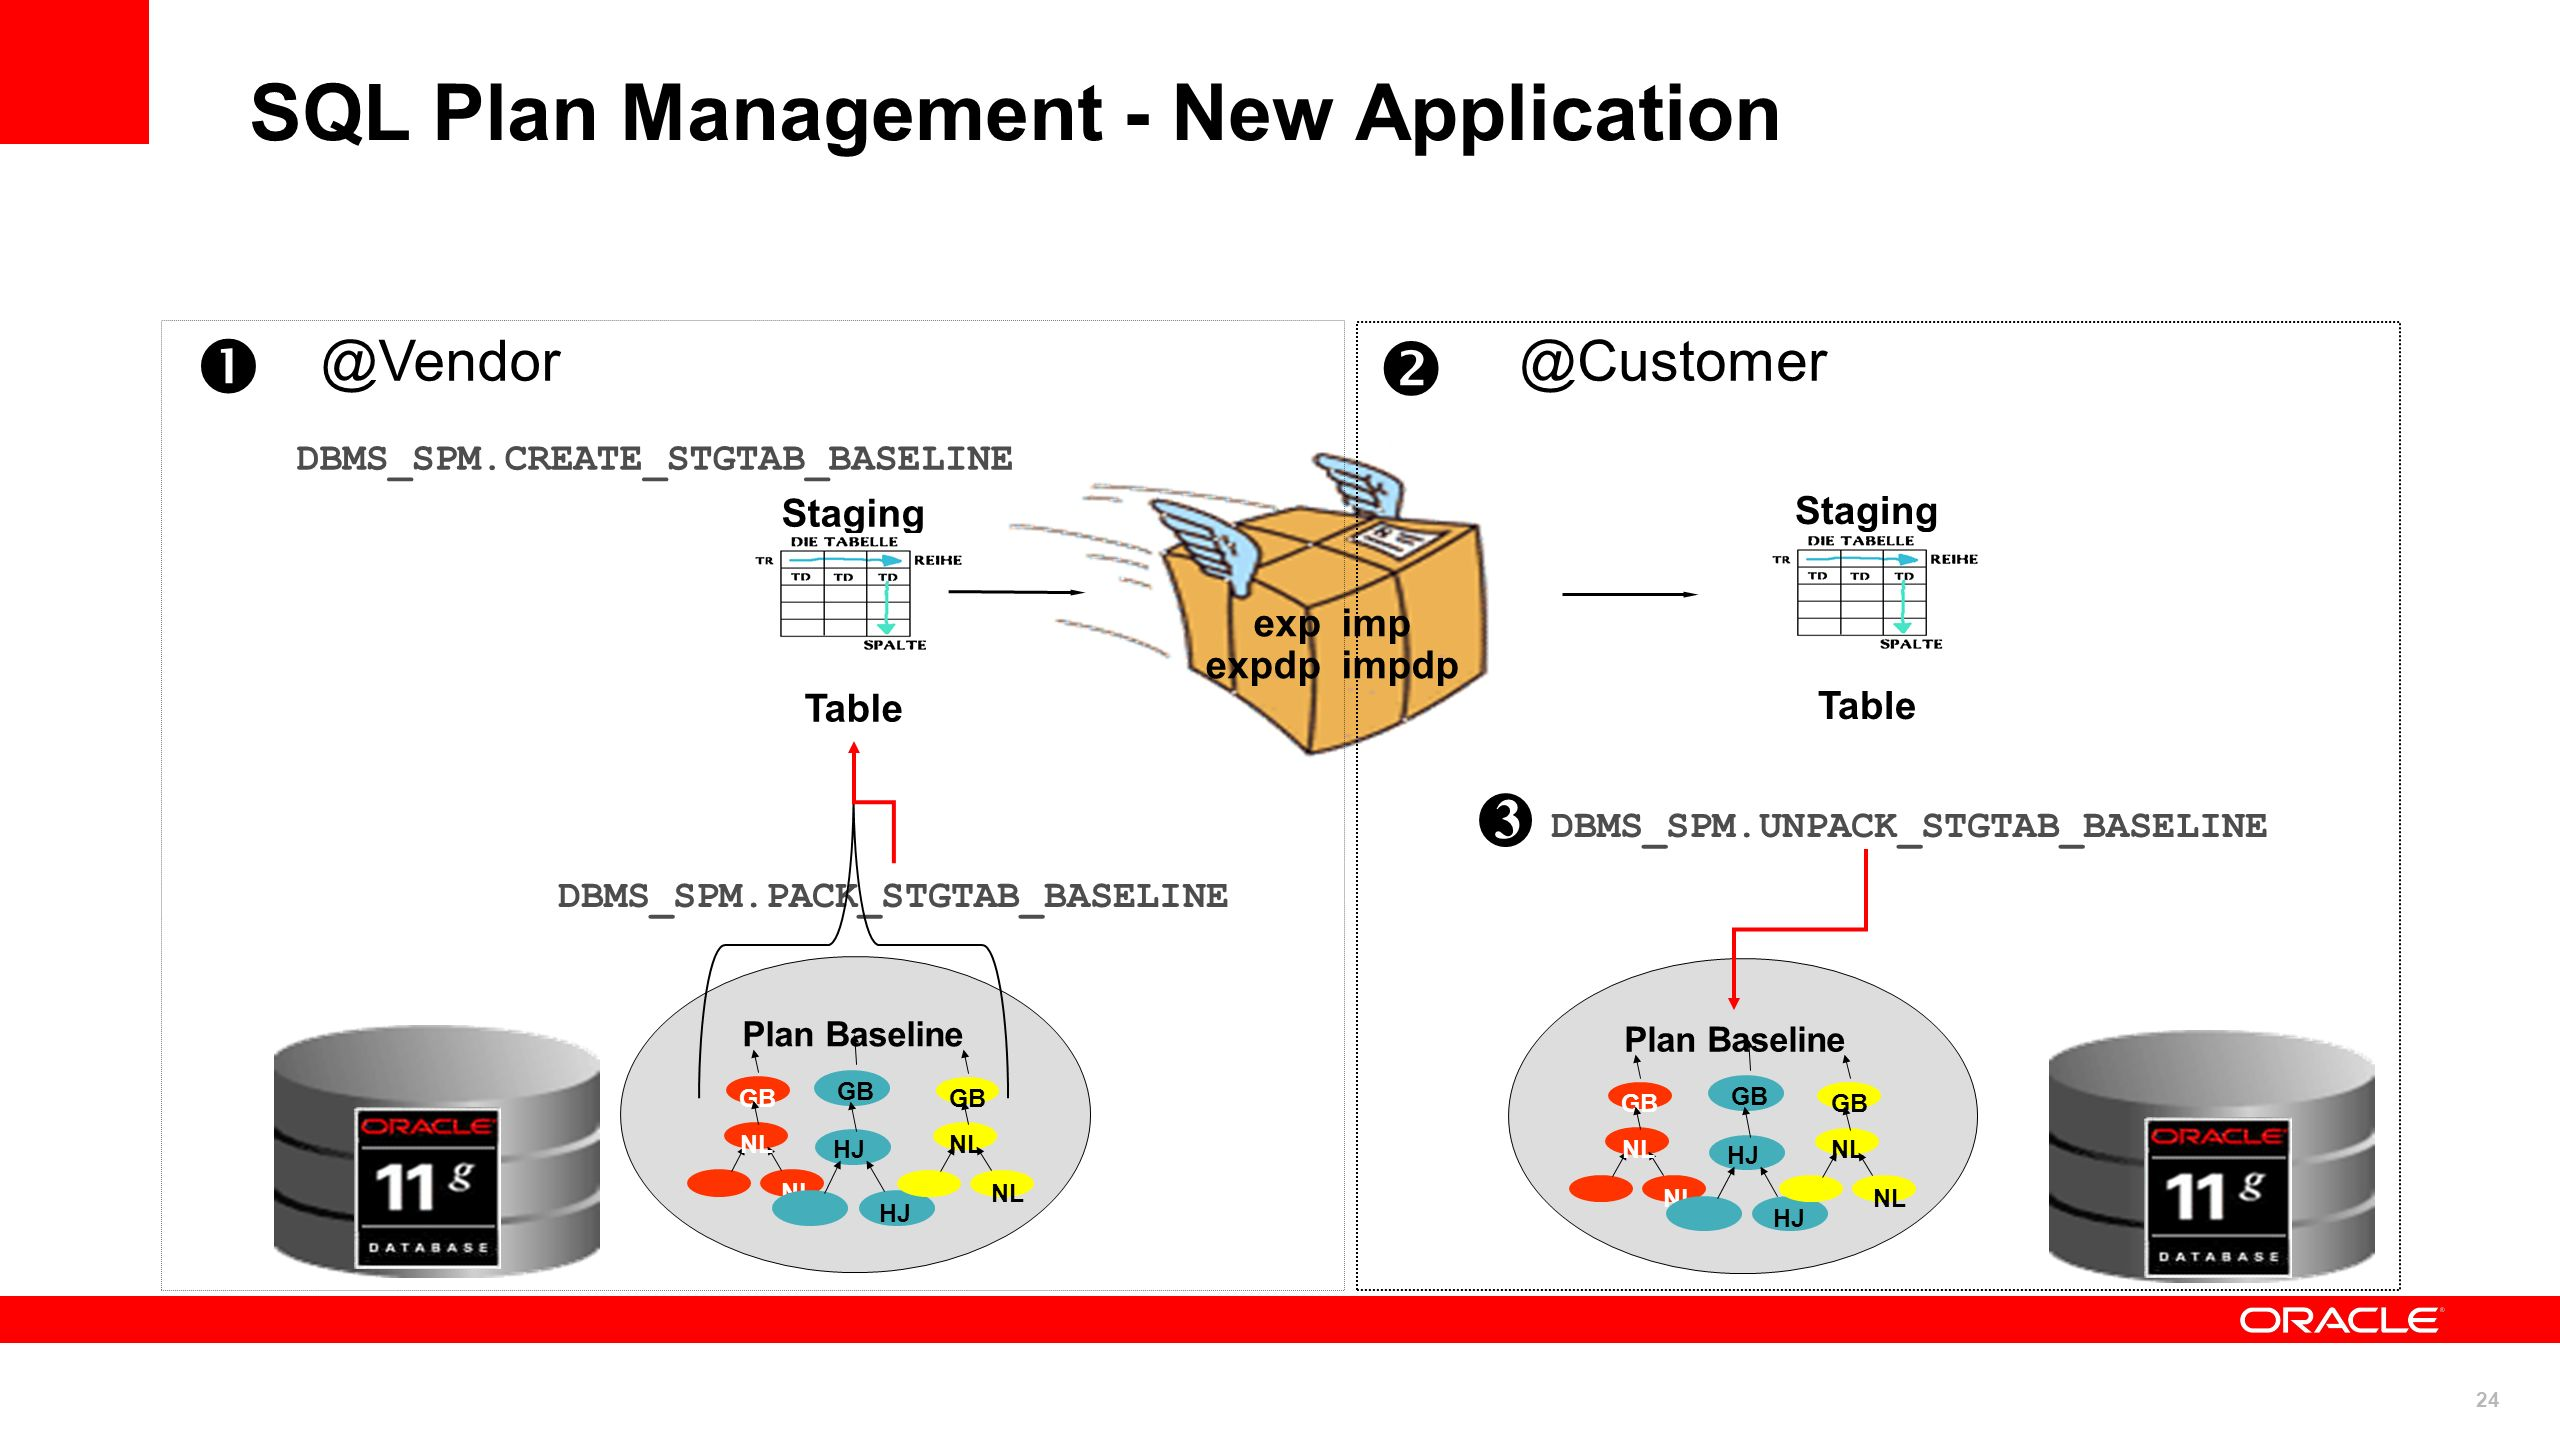 SQL Plan Management - New Application